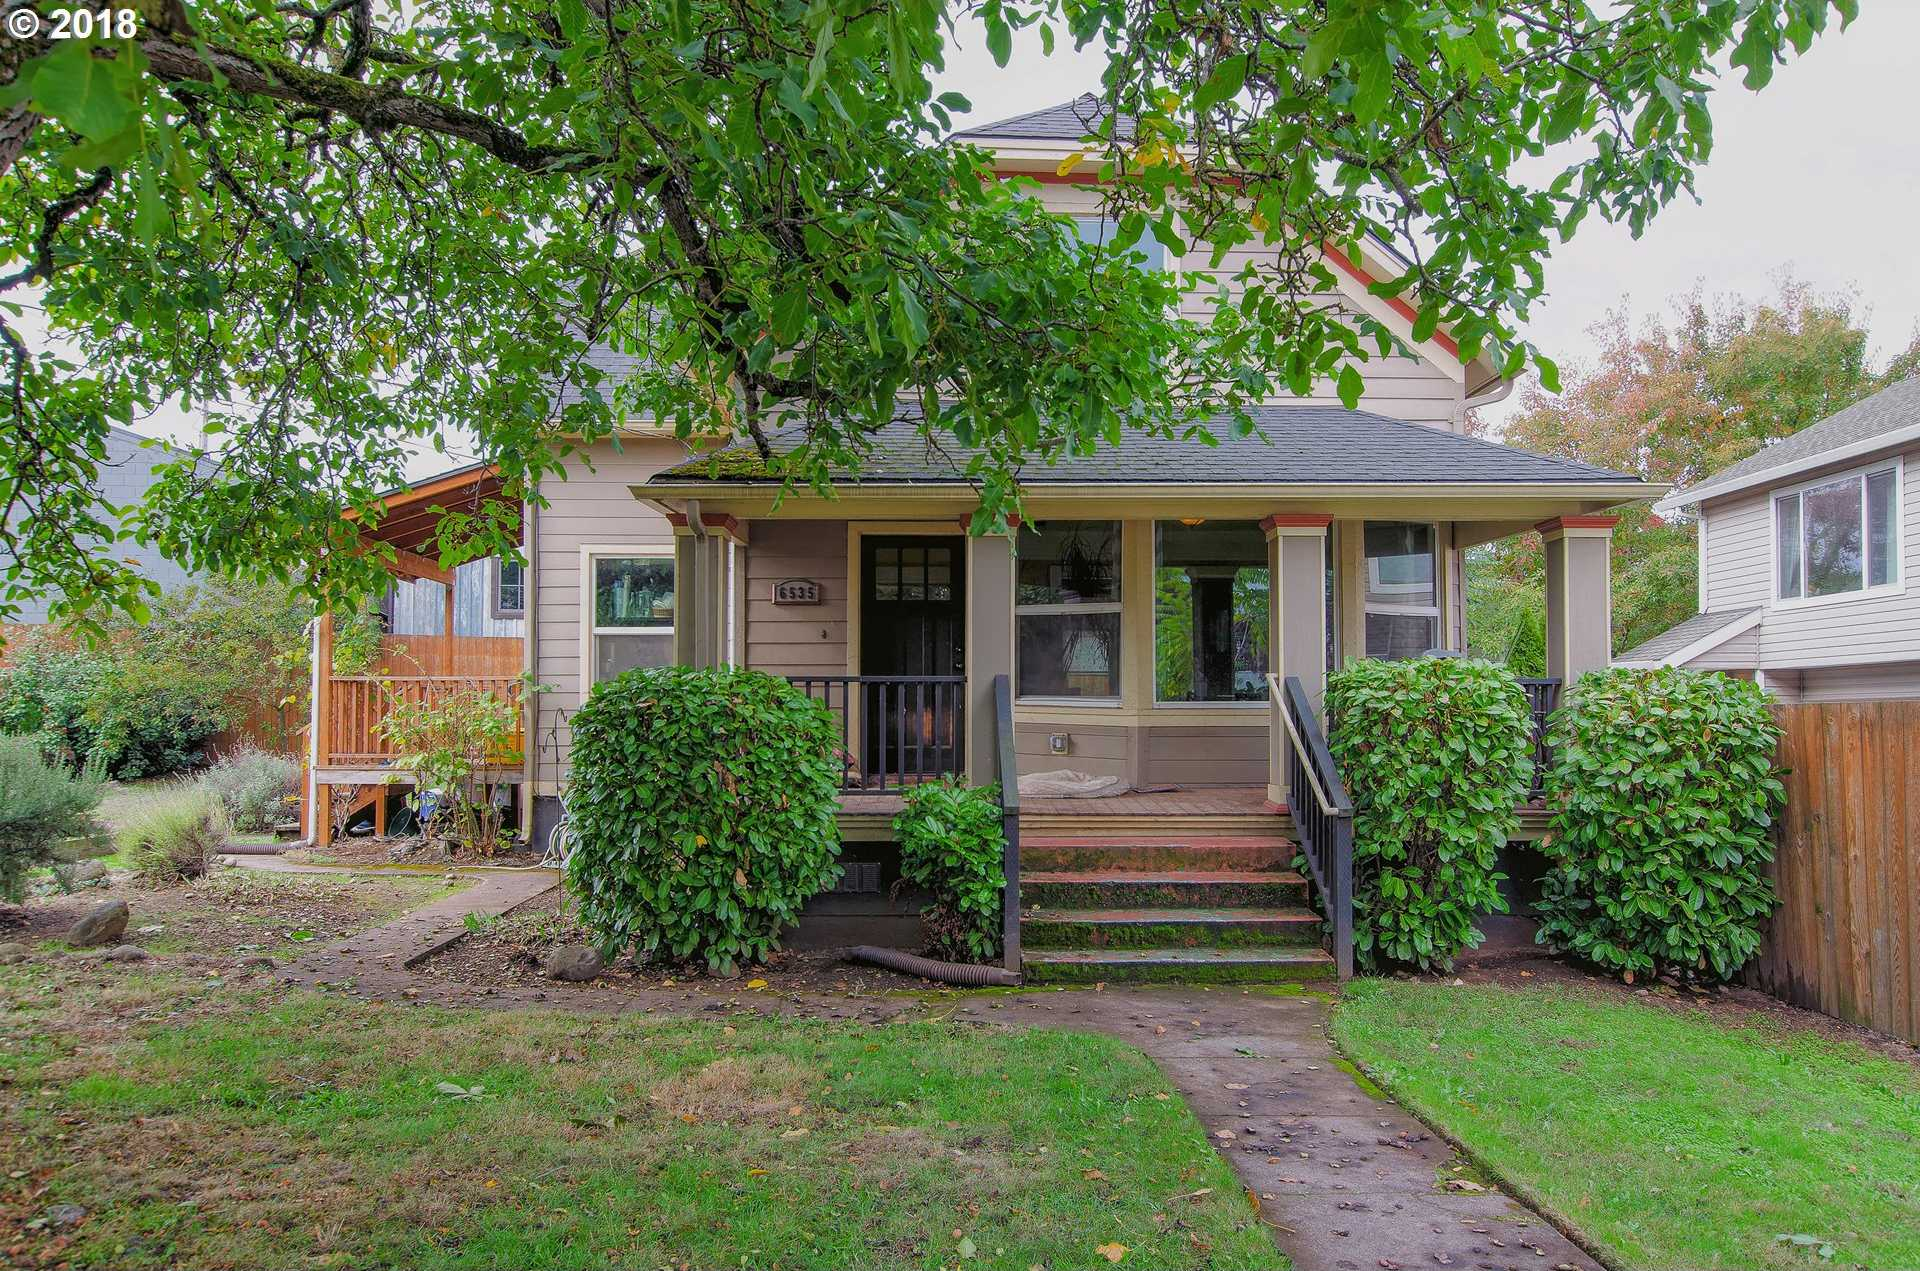 $550,000 - 3Br/2Ba -  for Sale in Woodlawn/dekum Triangle, Portland